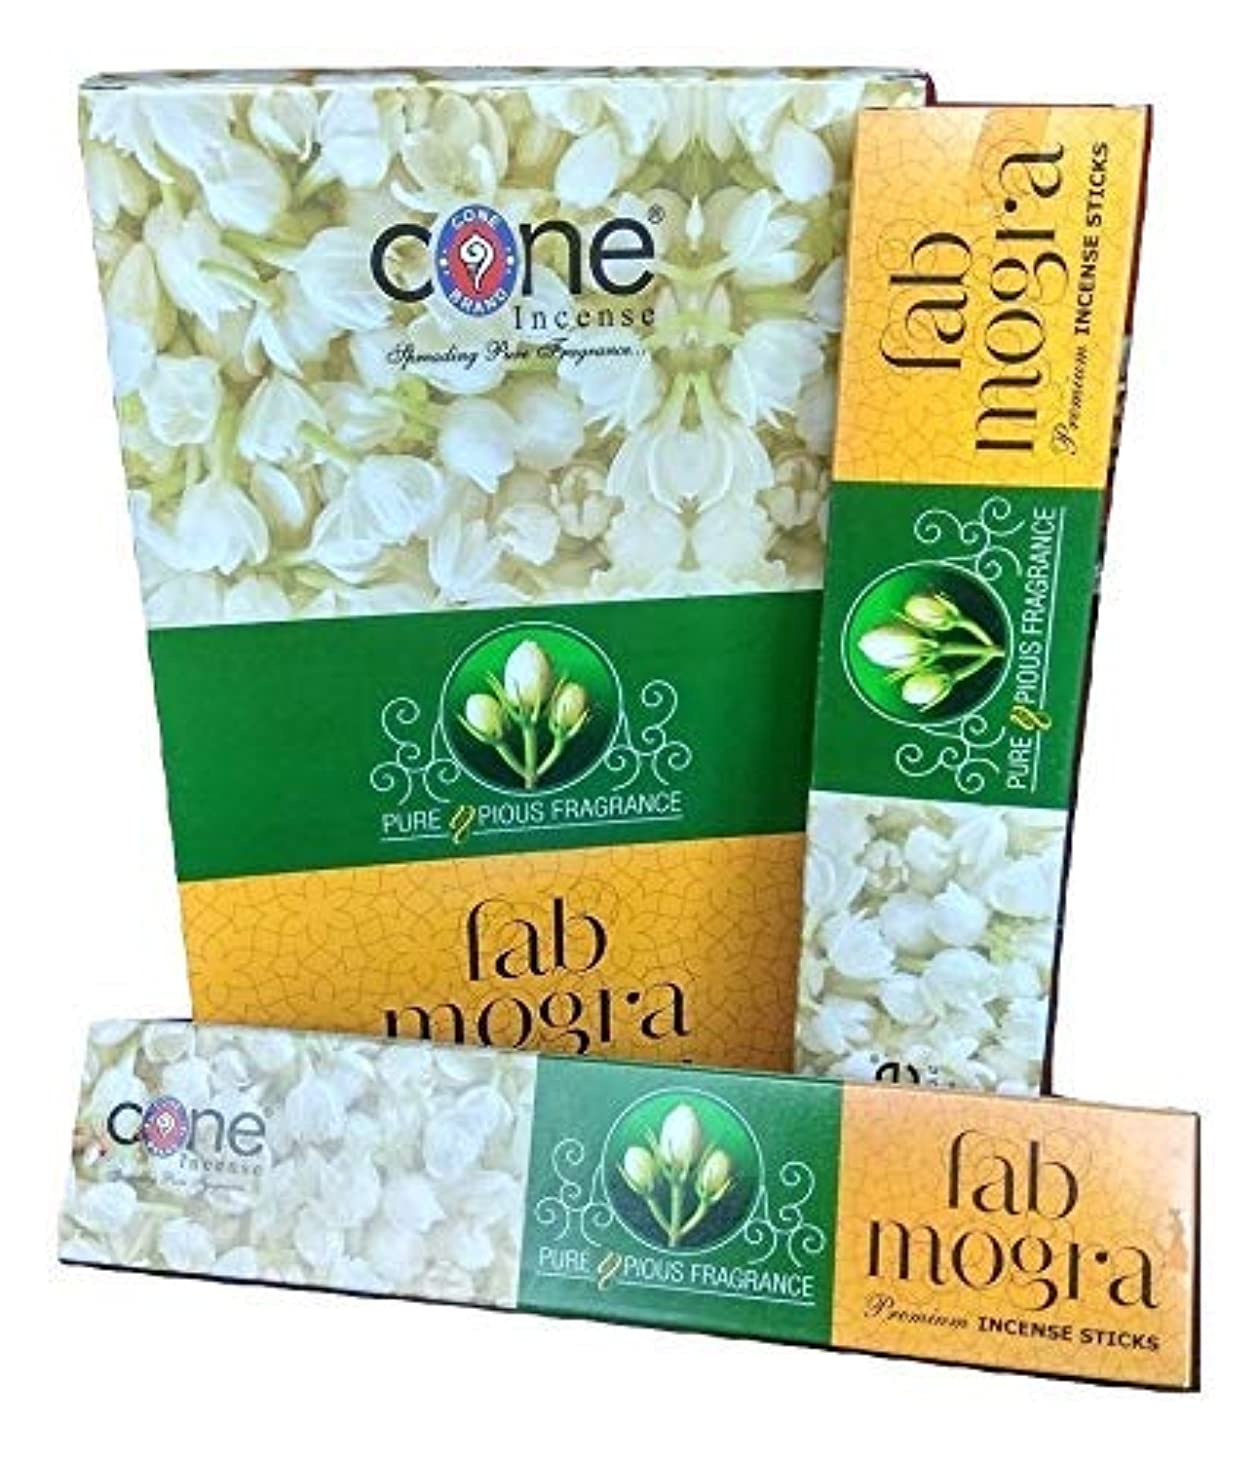 不純直感子供達Cone's Fab Mogra Incense Sticks Pack of 12 (144 Sticks)